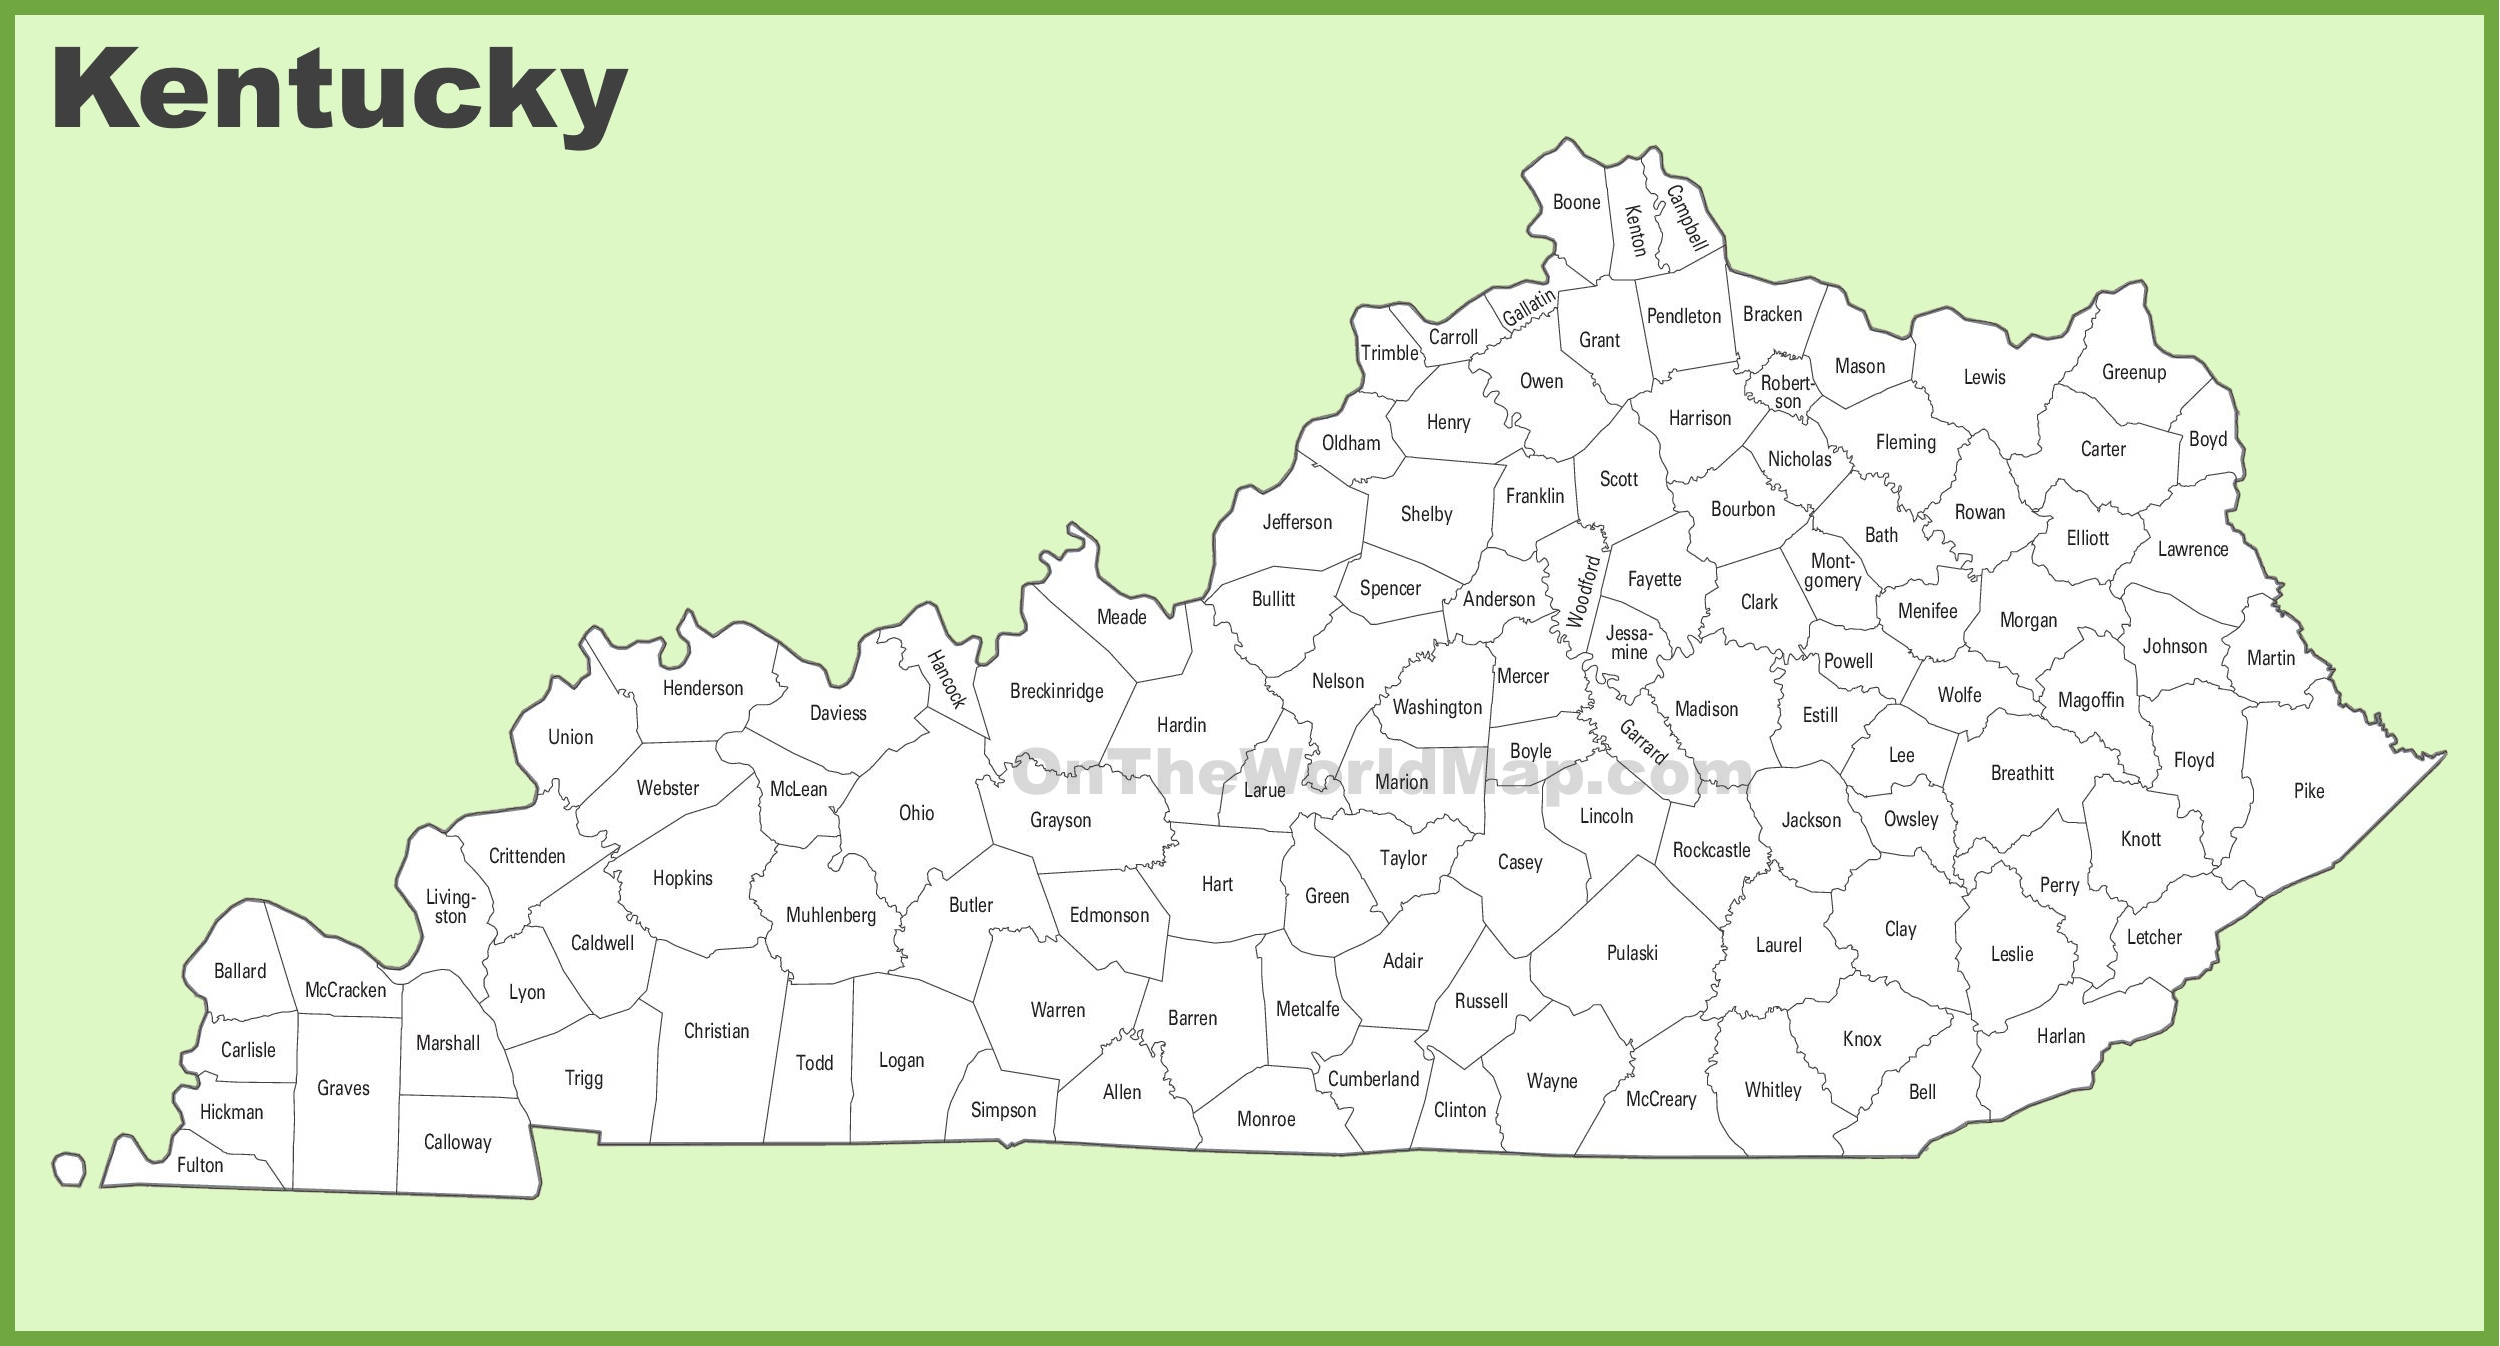 Ky Counties Map Kentucky county map